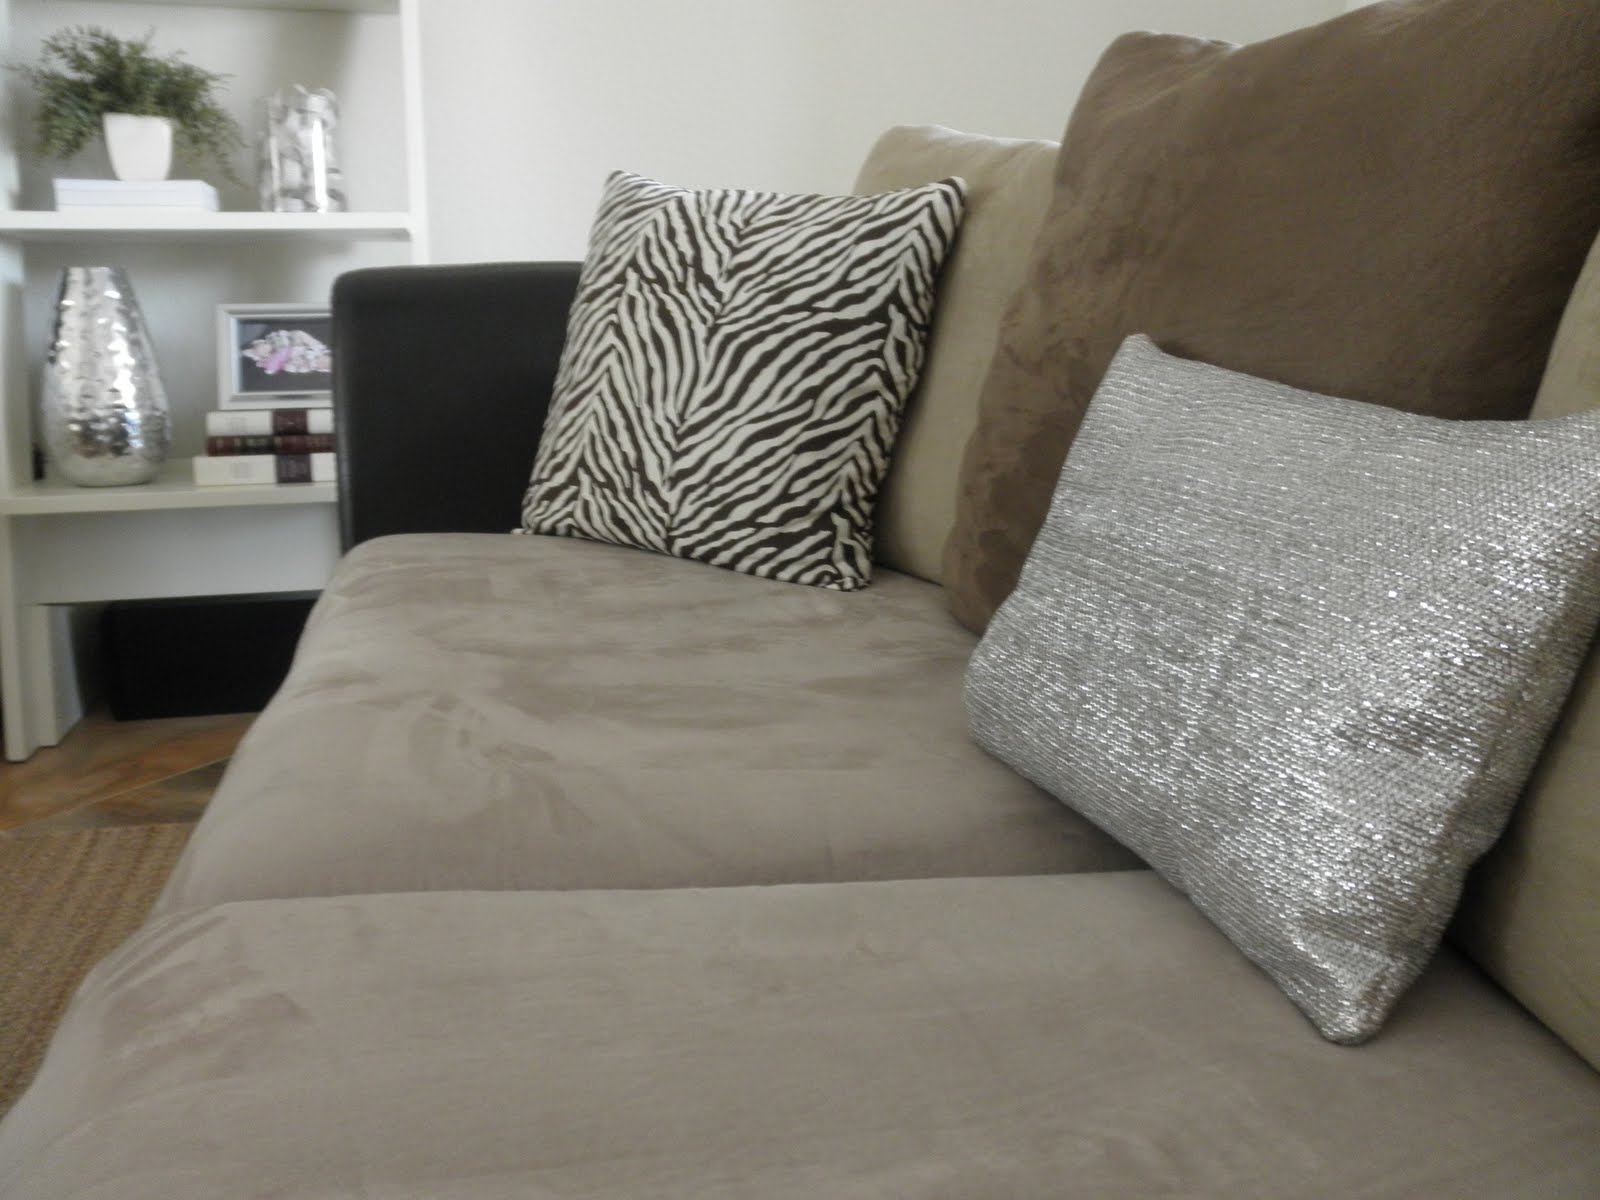 Make A Metallic Cleaning Towel Pillow 187 Dollar Store Crafts